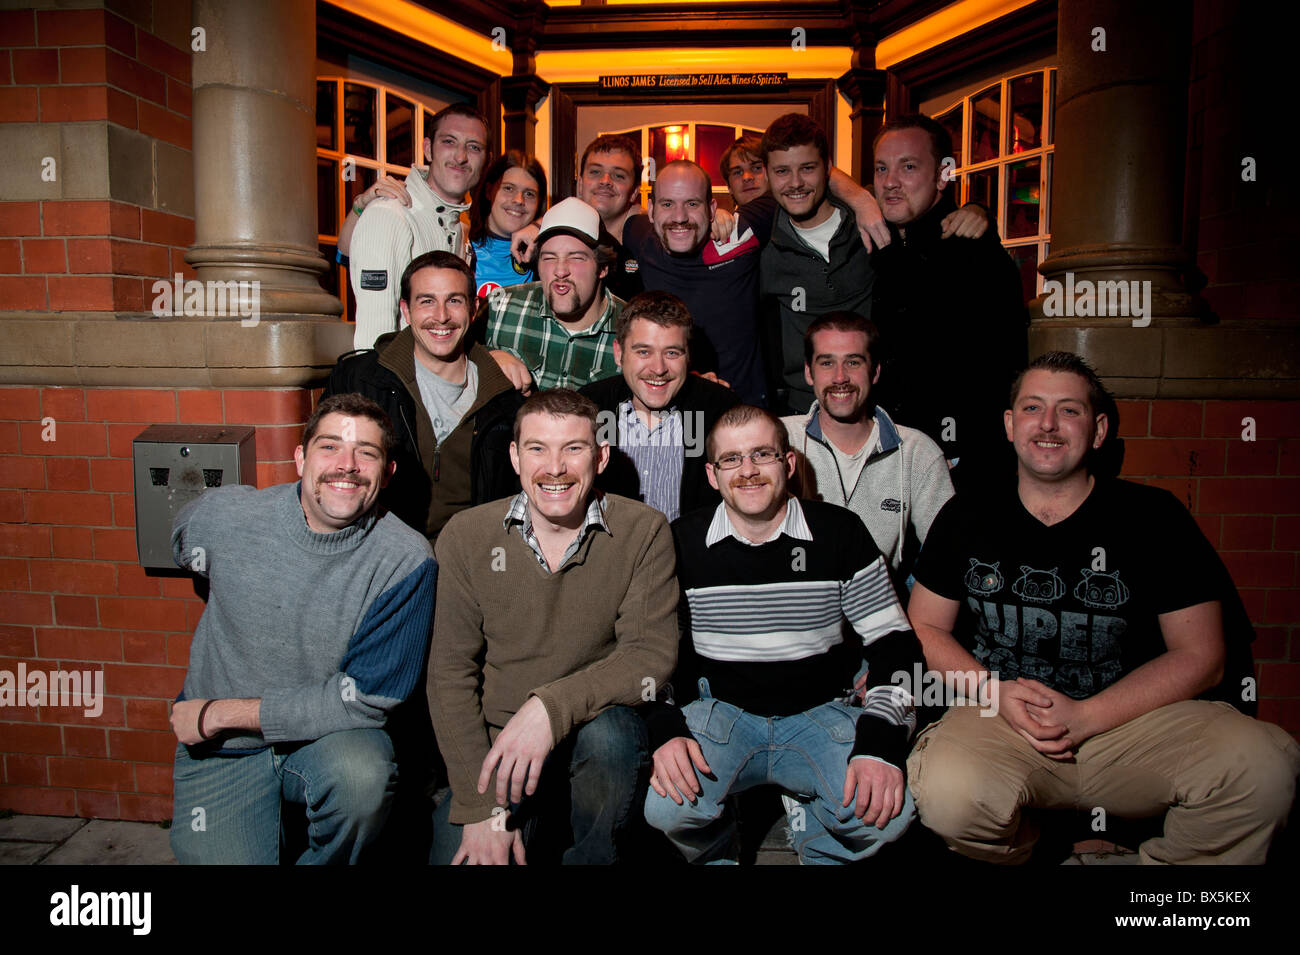 'Movember' growing moustaches man men charity fundraising event in aid pf prostrate cancer research Aberystyth - Stock Image